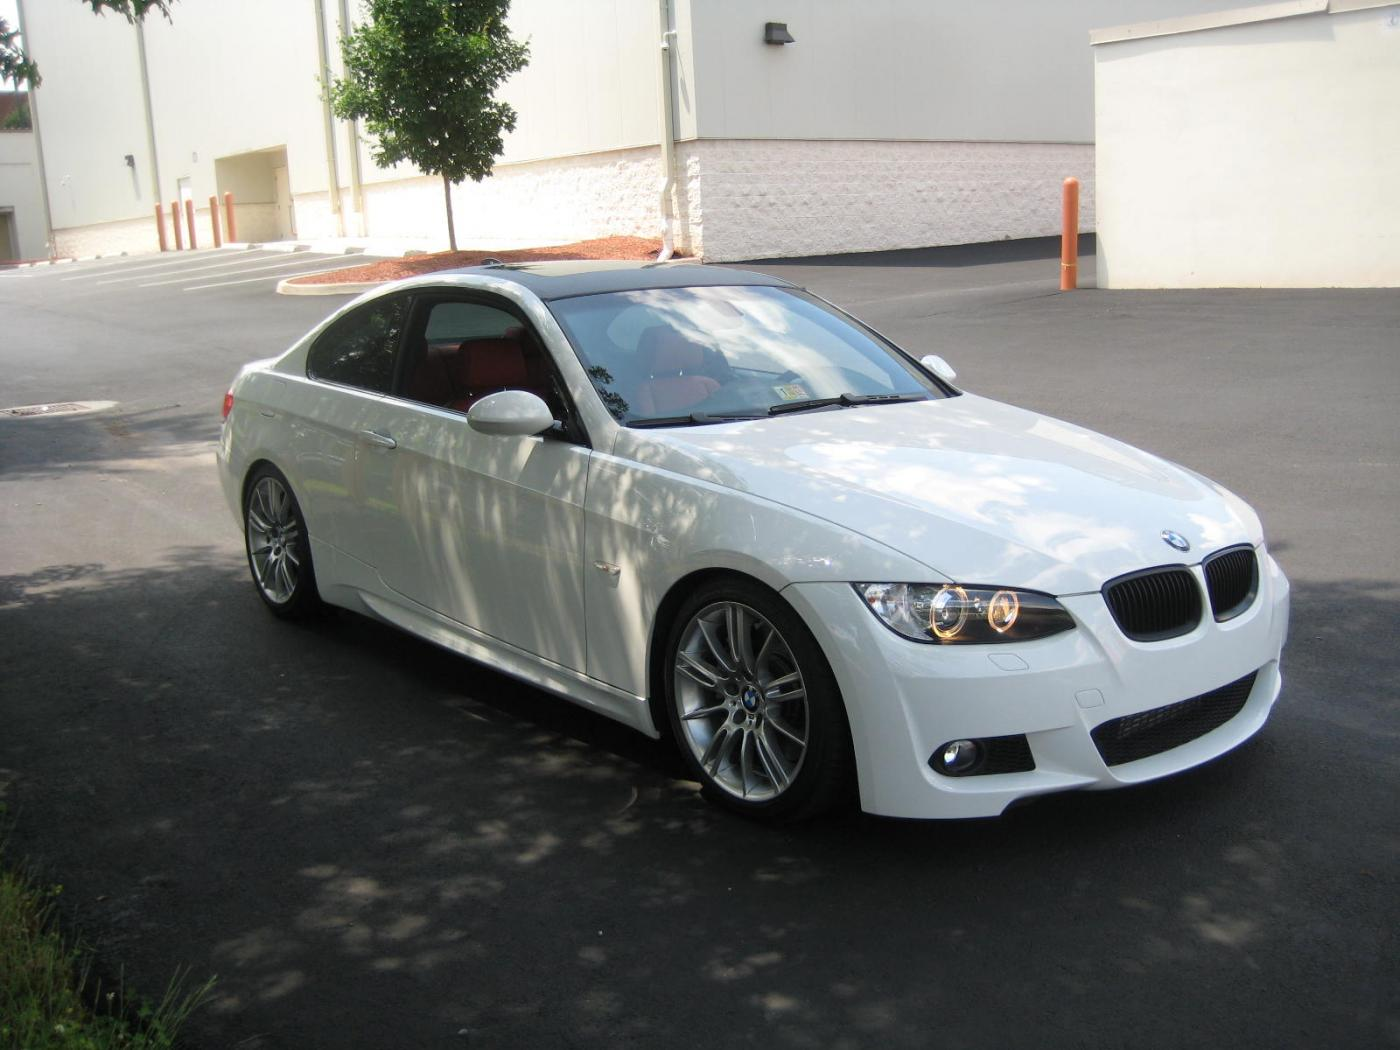 fs: 2009 bmw 335i coupe|m-sport - alpine white/coral red, all